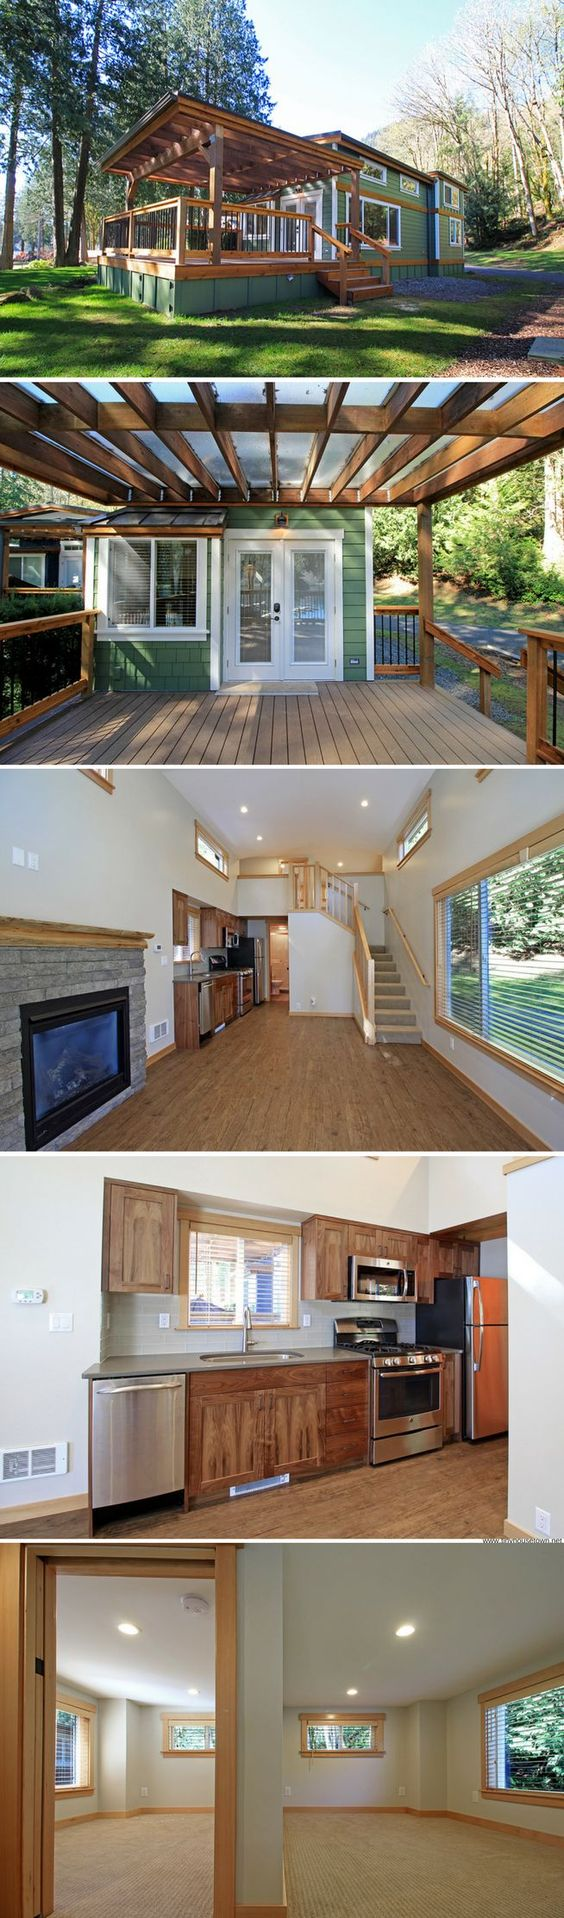 Shipping container homes living for the future earth911 com - Luxtiny Luxury Tiny Home Living Lakeside Arizona All Tiny Pinterest Tiny Houses And House